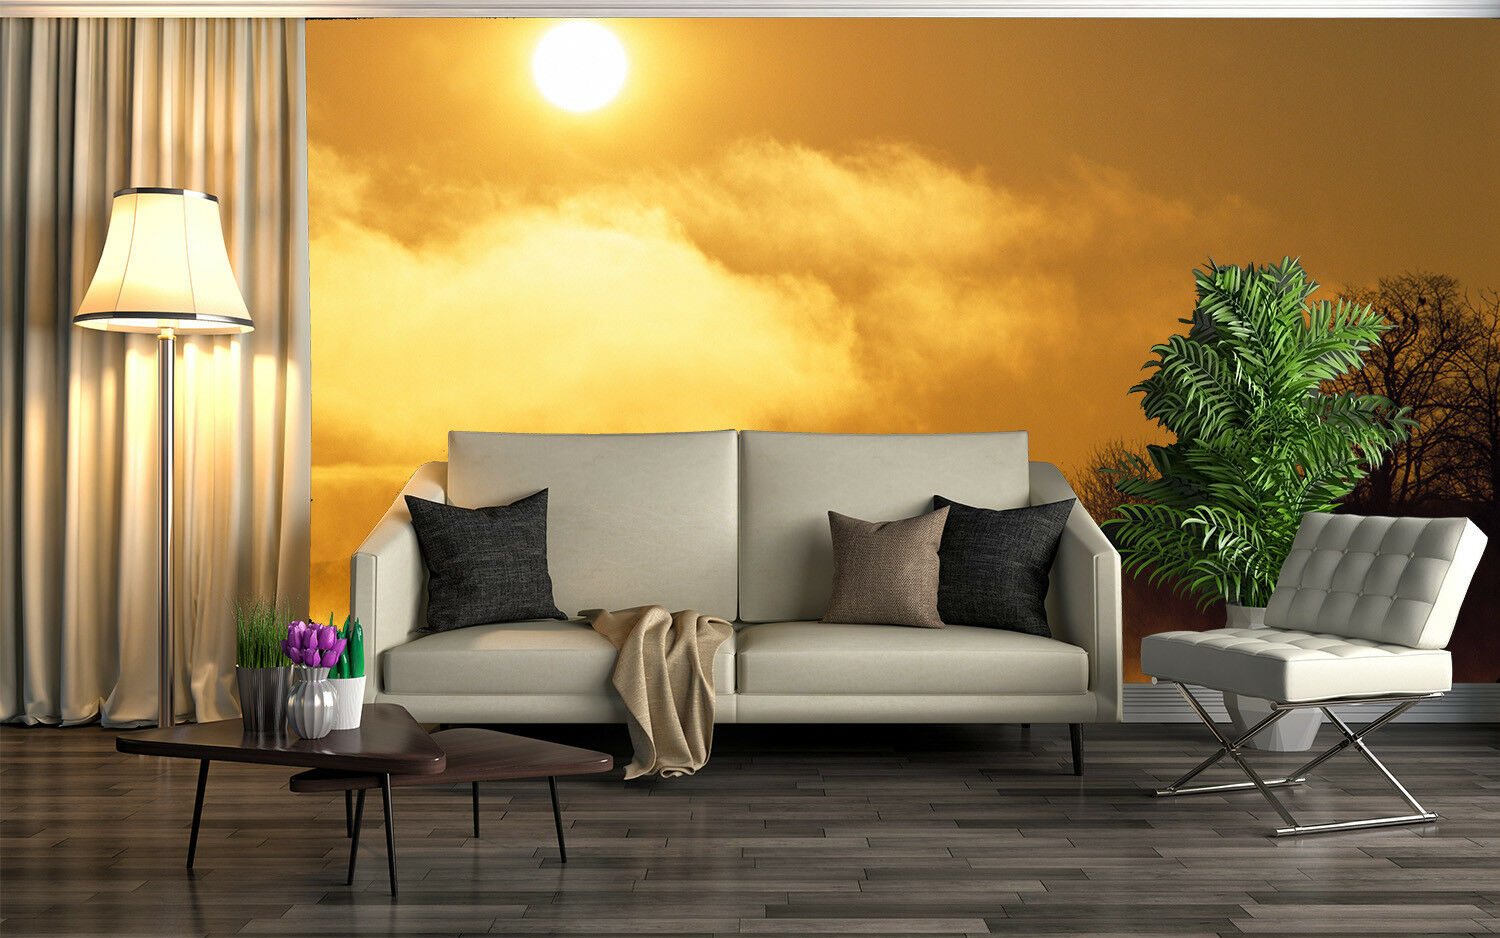 3D Dusk Forest 4045 Wallpaper Murals Wall Print Wallpaper Mural AJ WALL UK Lemon